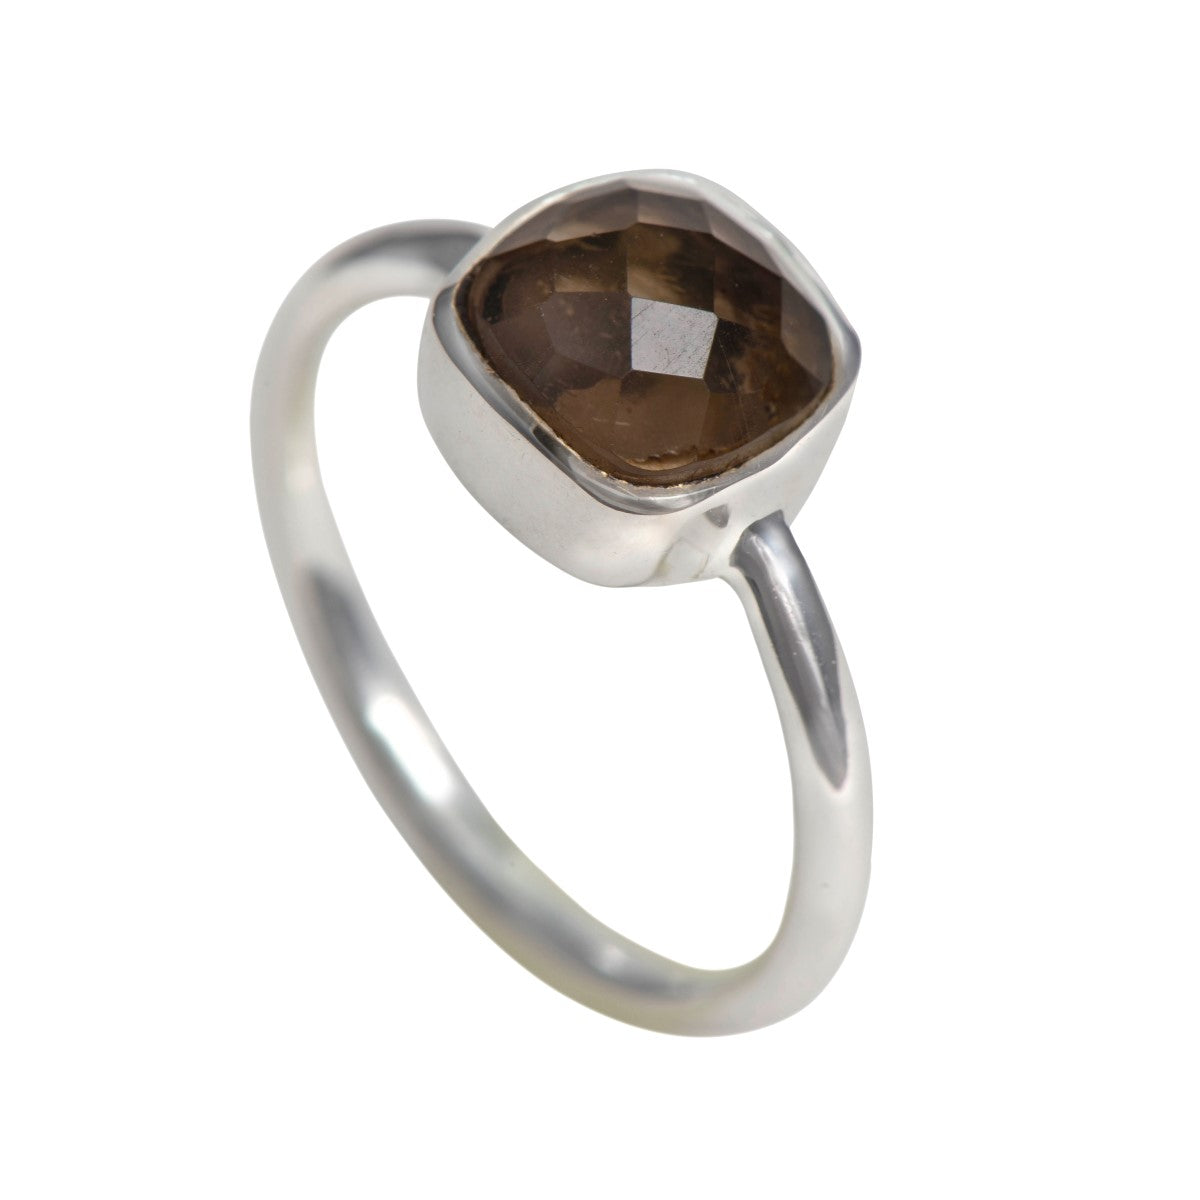 Faceted Square Cut Natural Gemstone Sterling Silver Solitaire Ring - Smoky Quartz